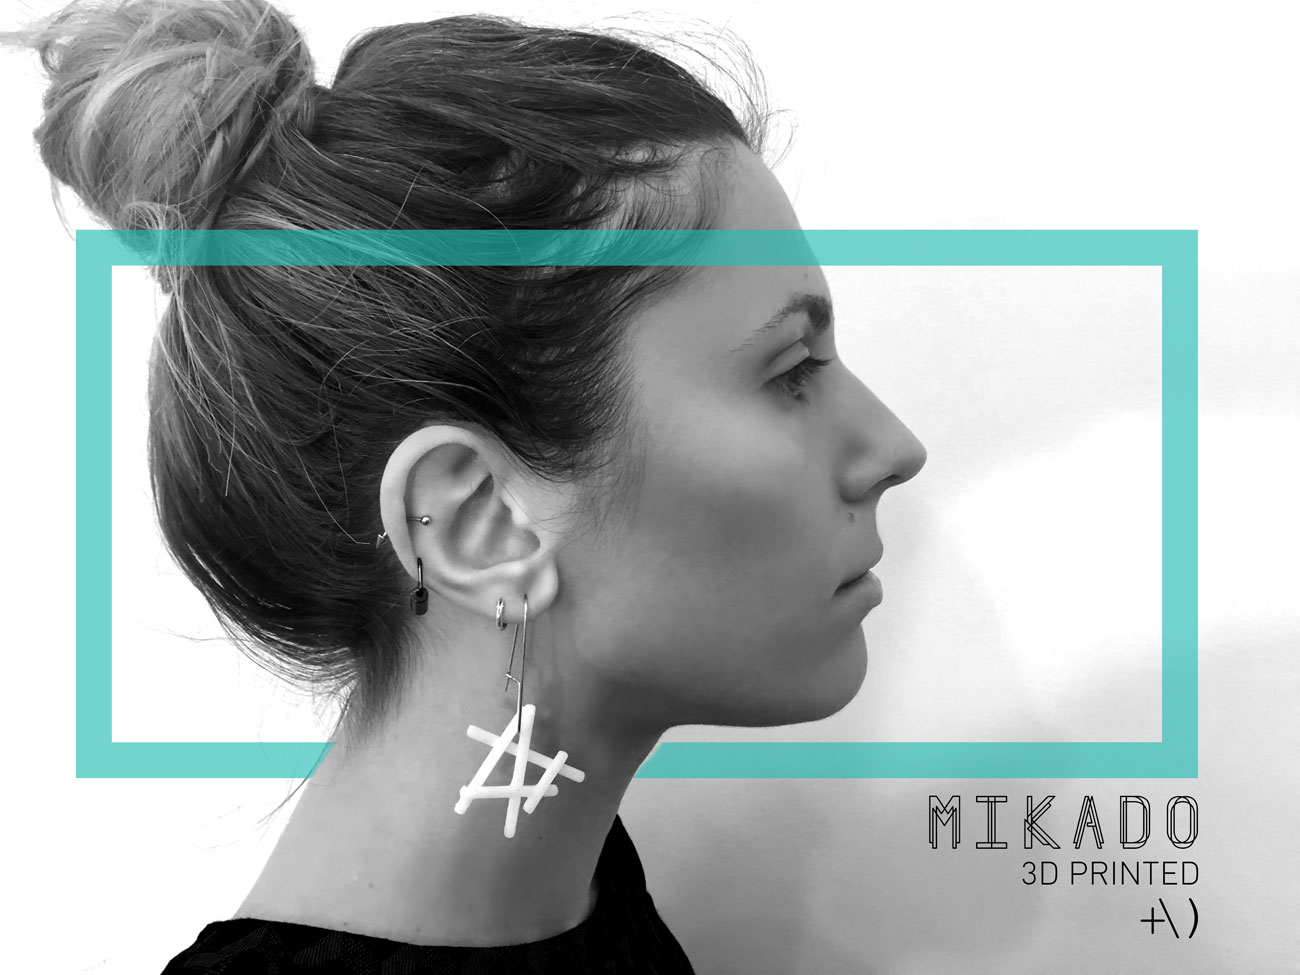 mikado 3d printed earrings